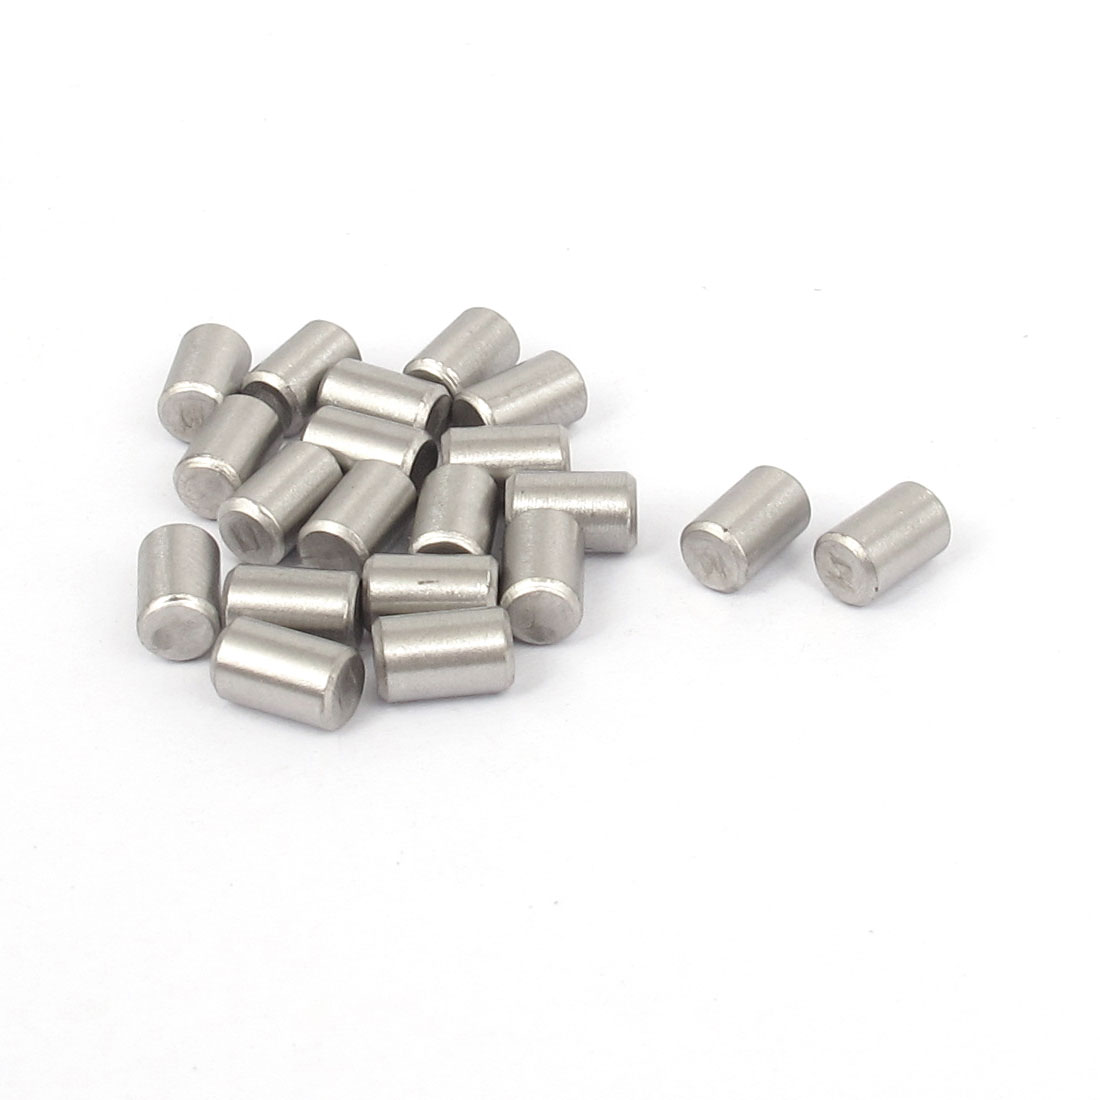 5mmx8mm 304 Stainless Steel Parallel Dowel Pins Fastener Elements 20pcs